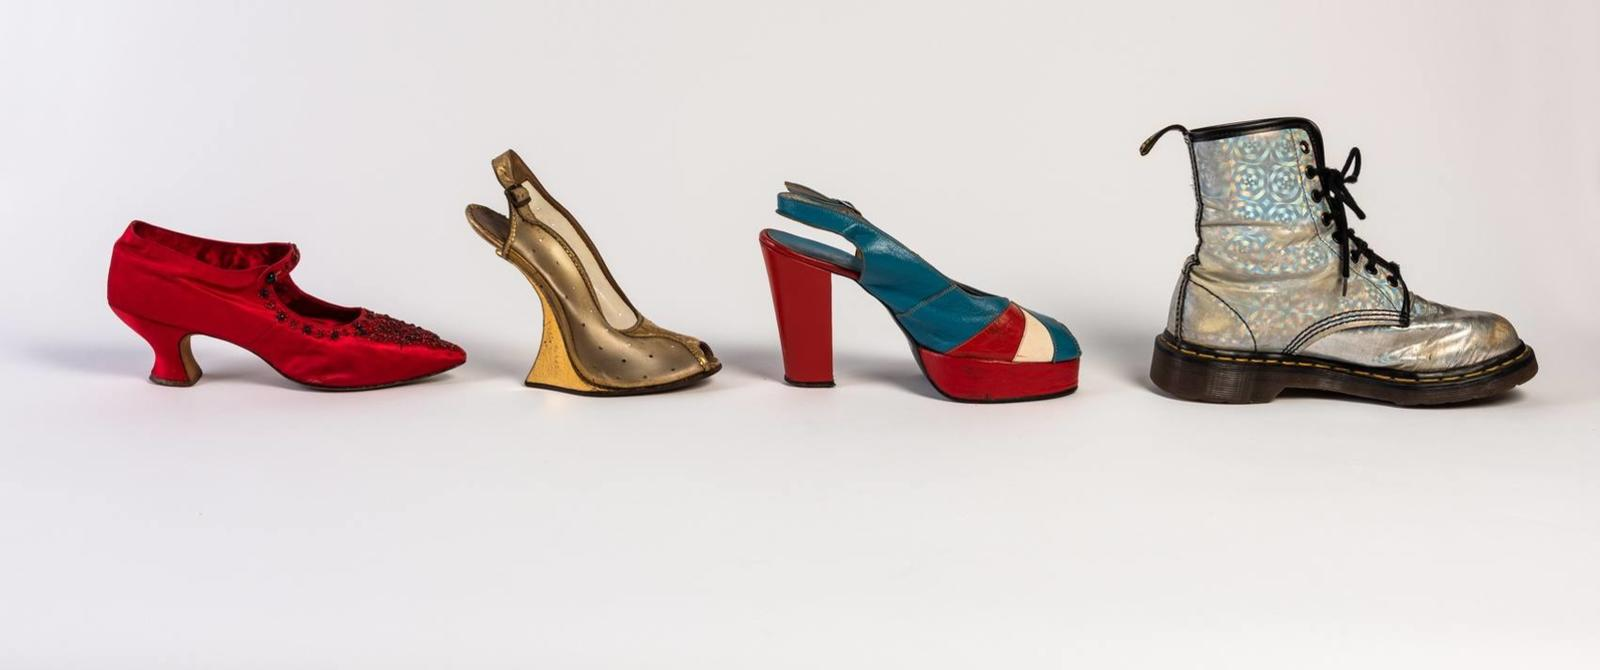 Image: A selection of shoes from Shoephoria!